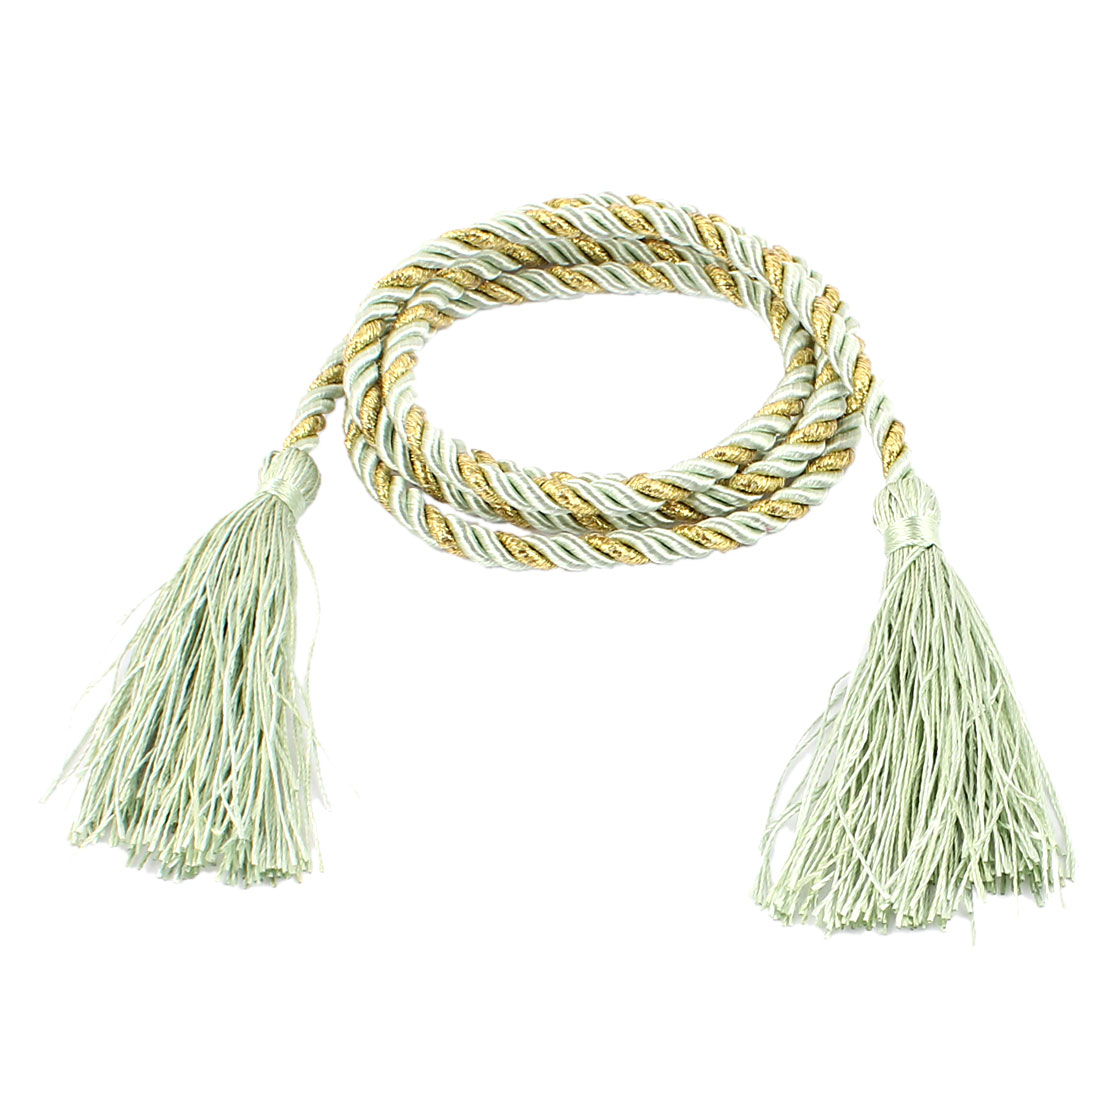 Window Curtain Tieback Tie Back Tassels Trim Rope Cord String 133cm Green